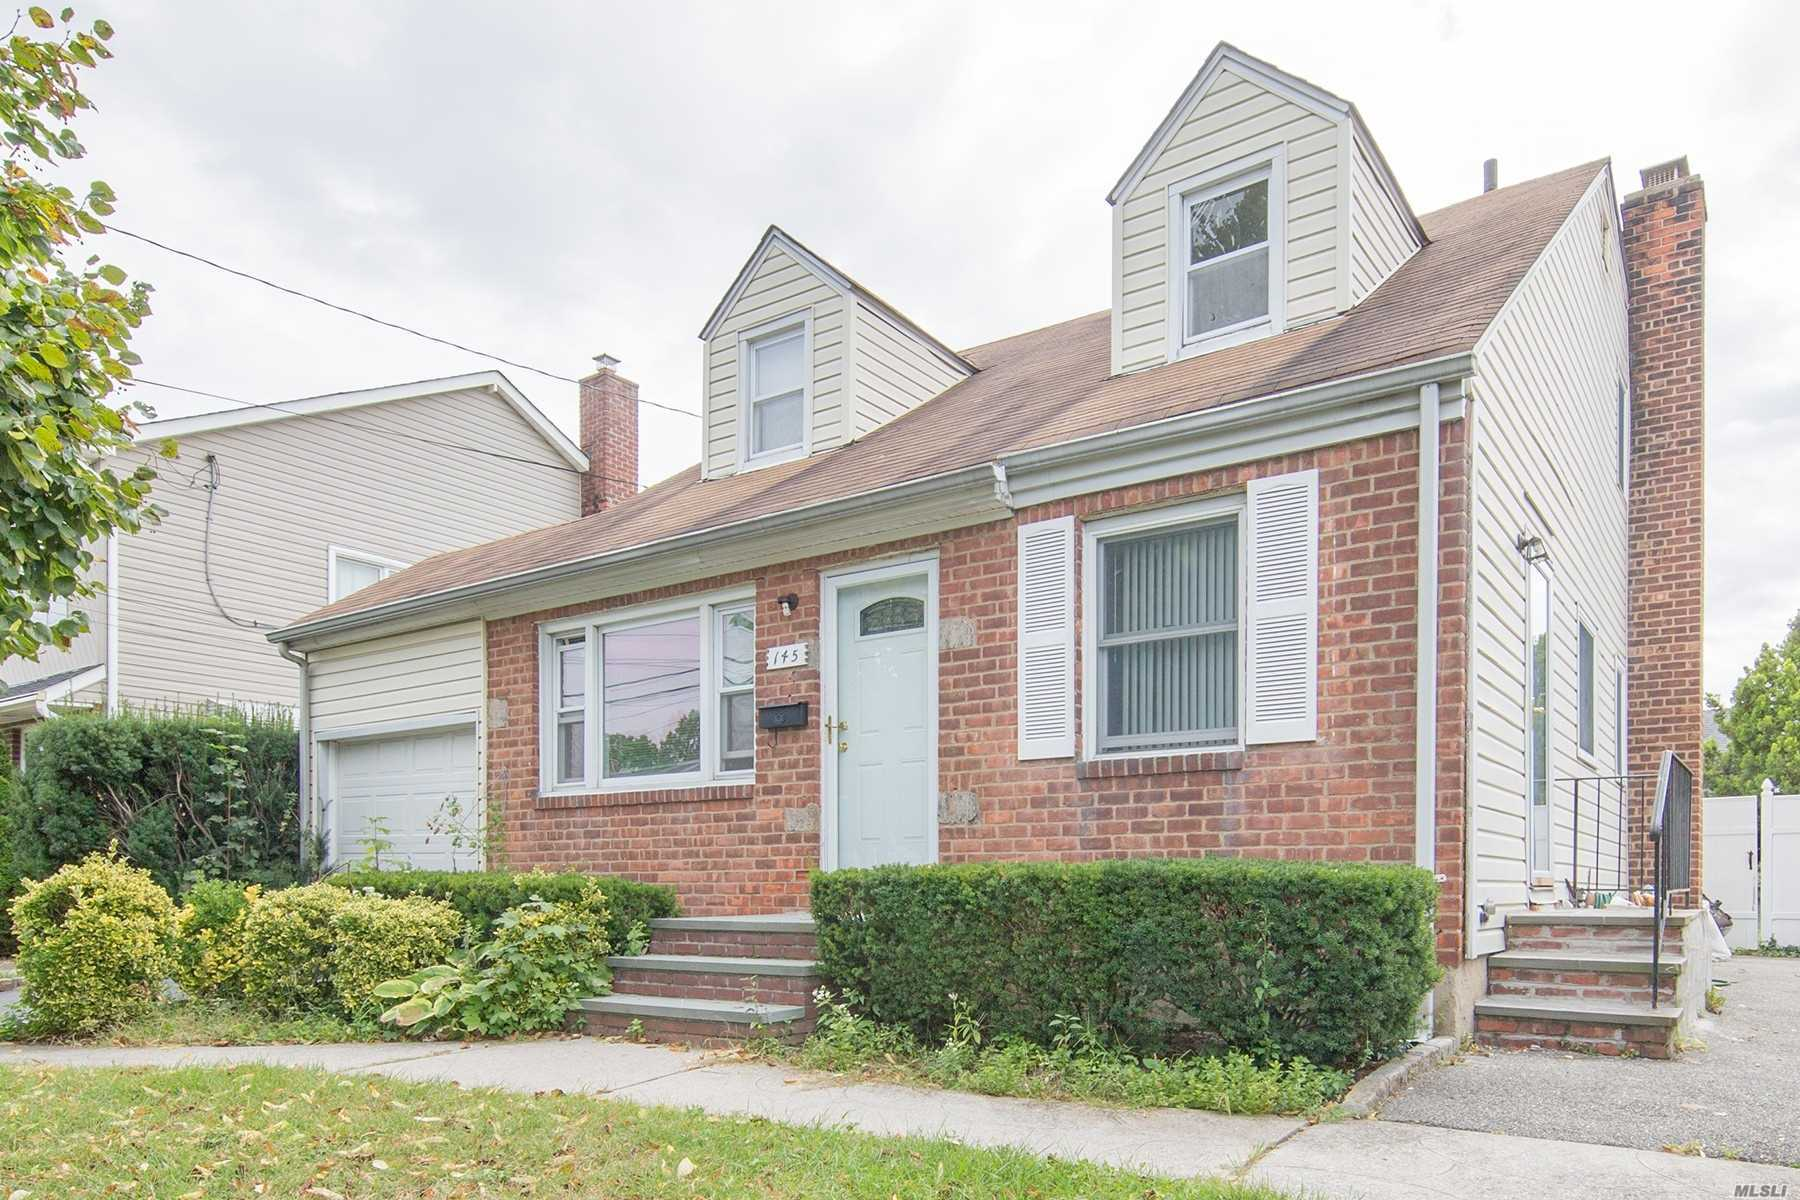 Beautifully Recently Renovated Expanded Cape Home Featuring 5/6 Bedrooms, 2 Full Bath, New Kitchen, New Ss Appliances, Wood Floors, In The Highly Desirable Area Of Mineola. Don't Miss This Gem!